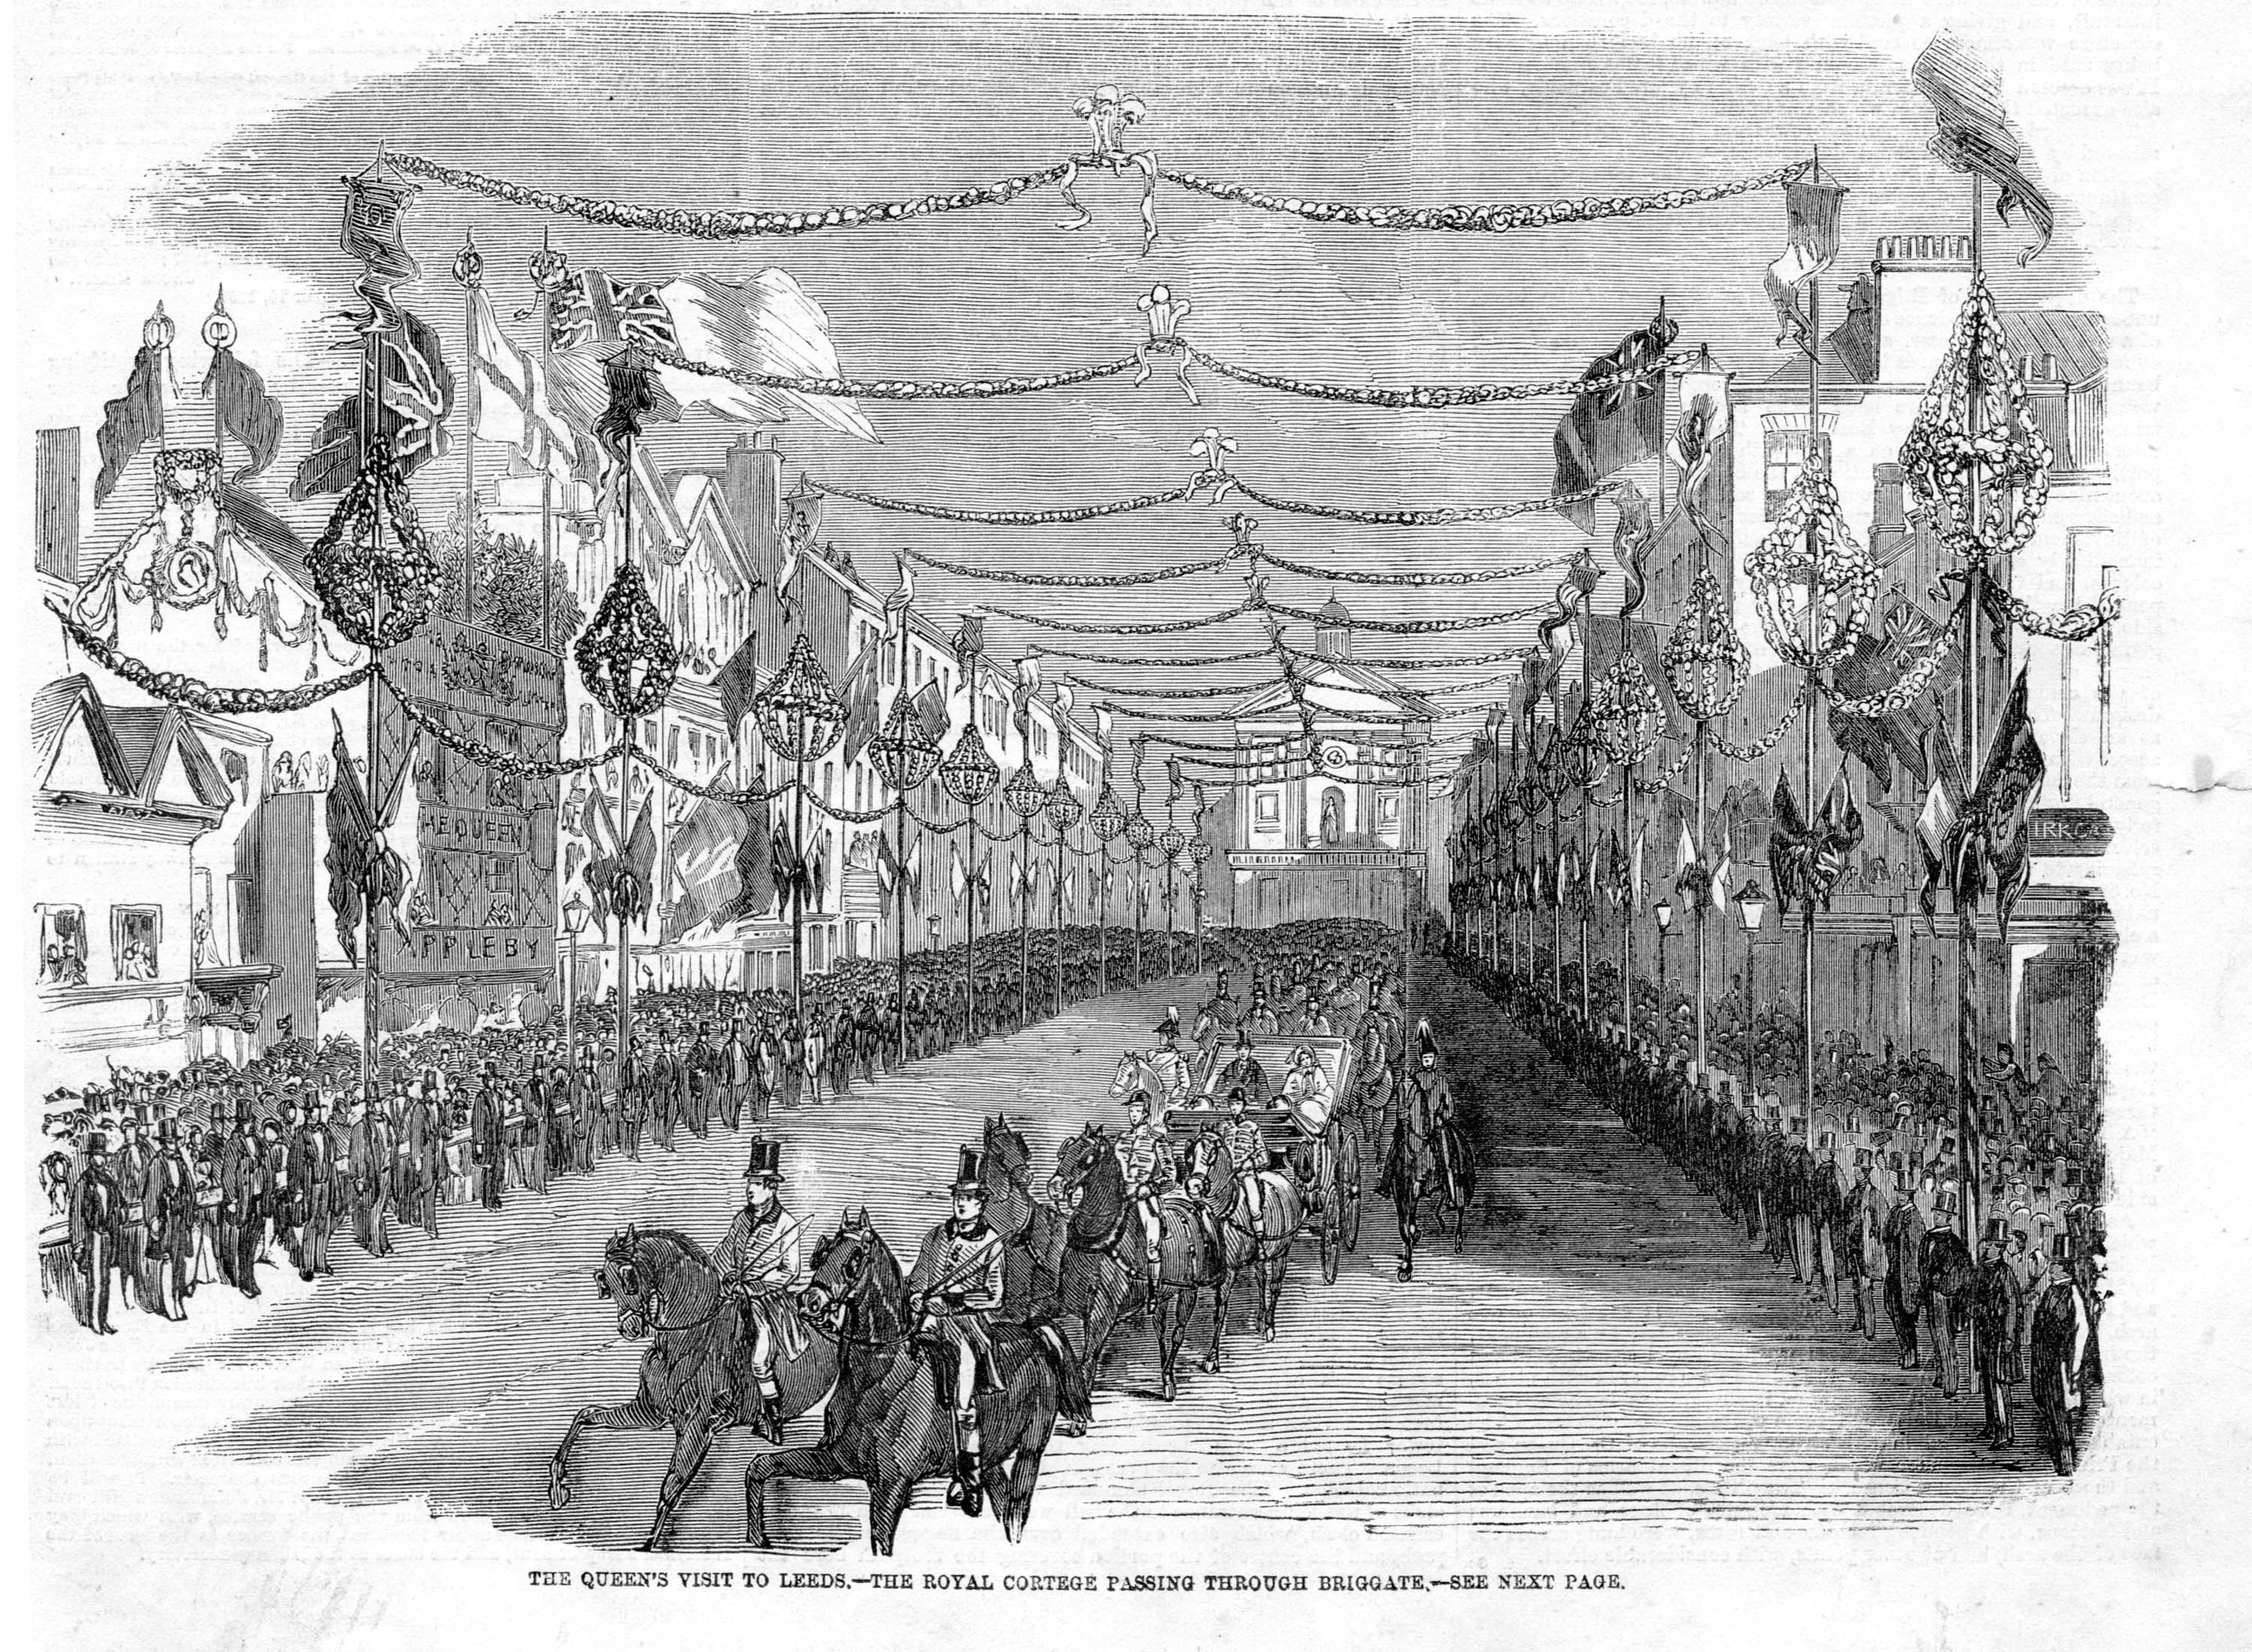 Illustration showing buildings on either side of a wide street which is festooned with bunting.  Down the centre of the street is a parade of horses with a carriage with Queen Victoria in it.